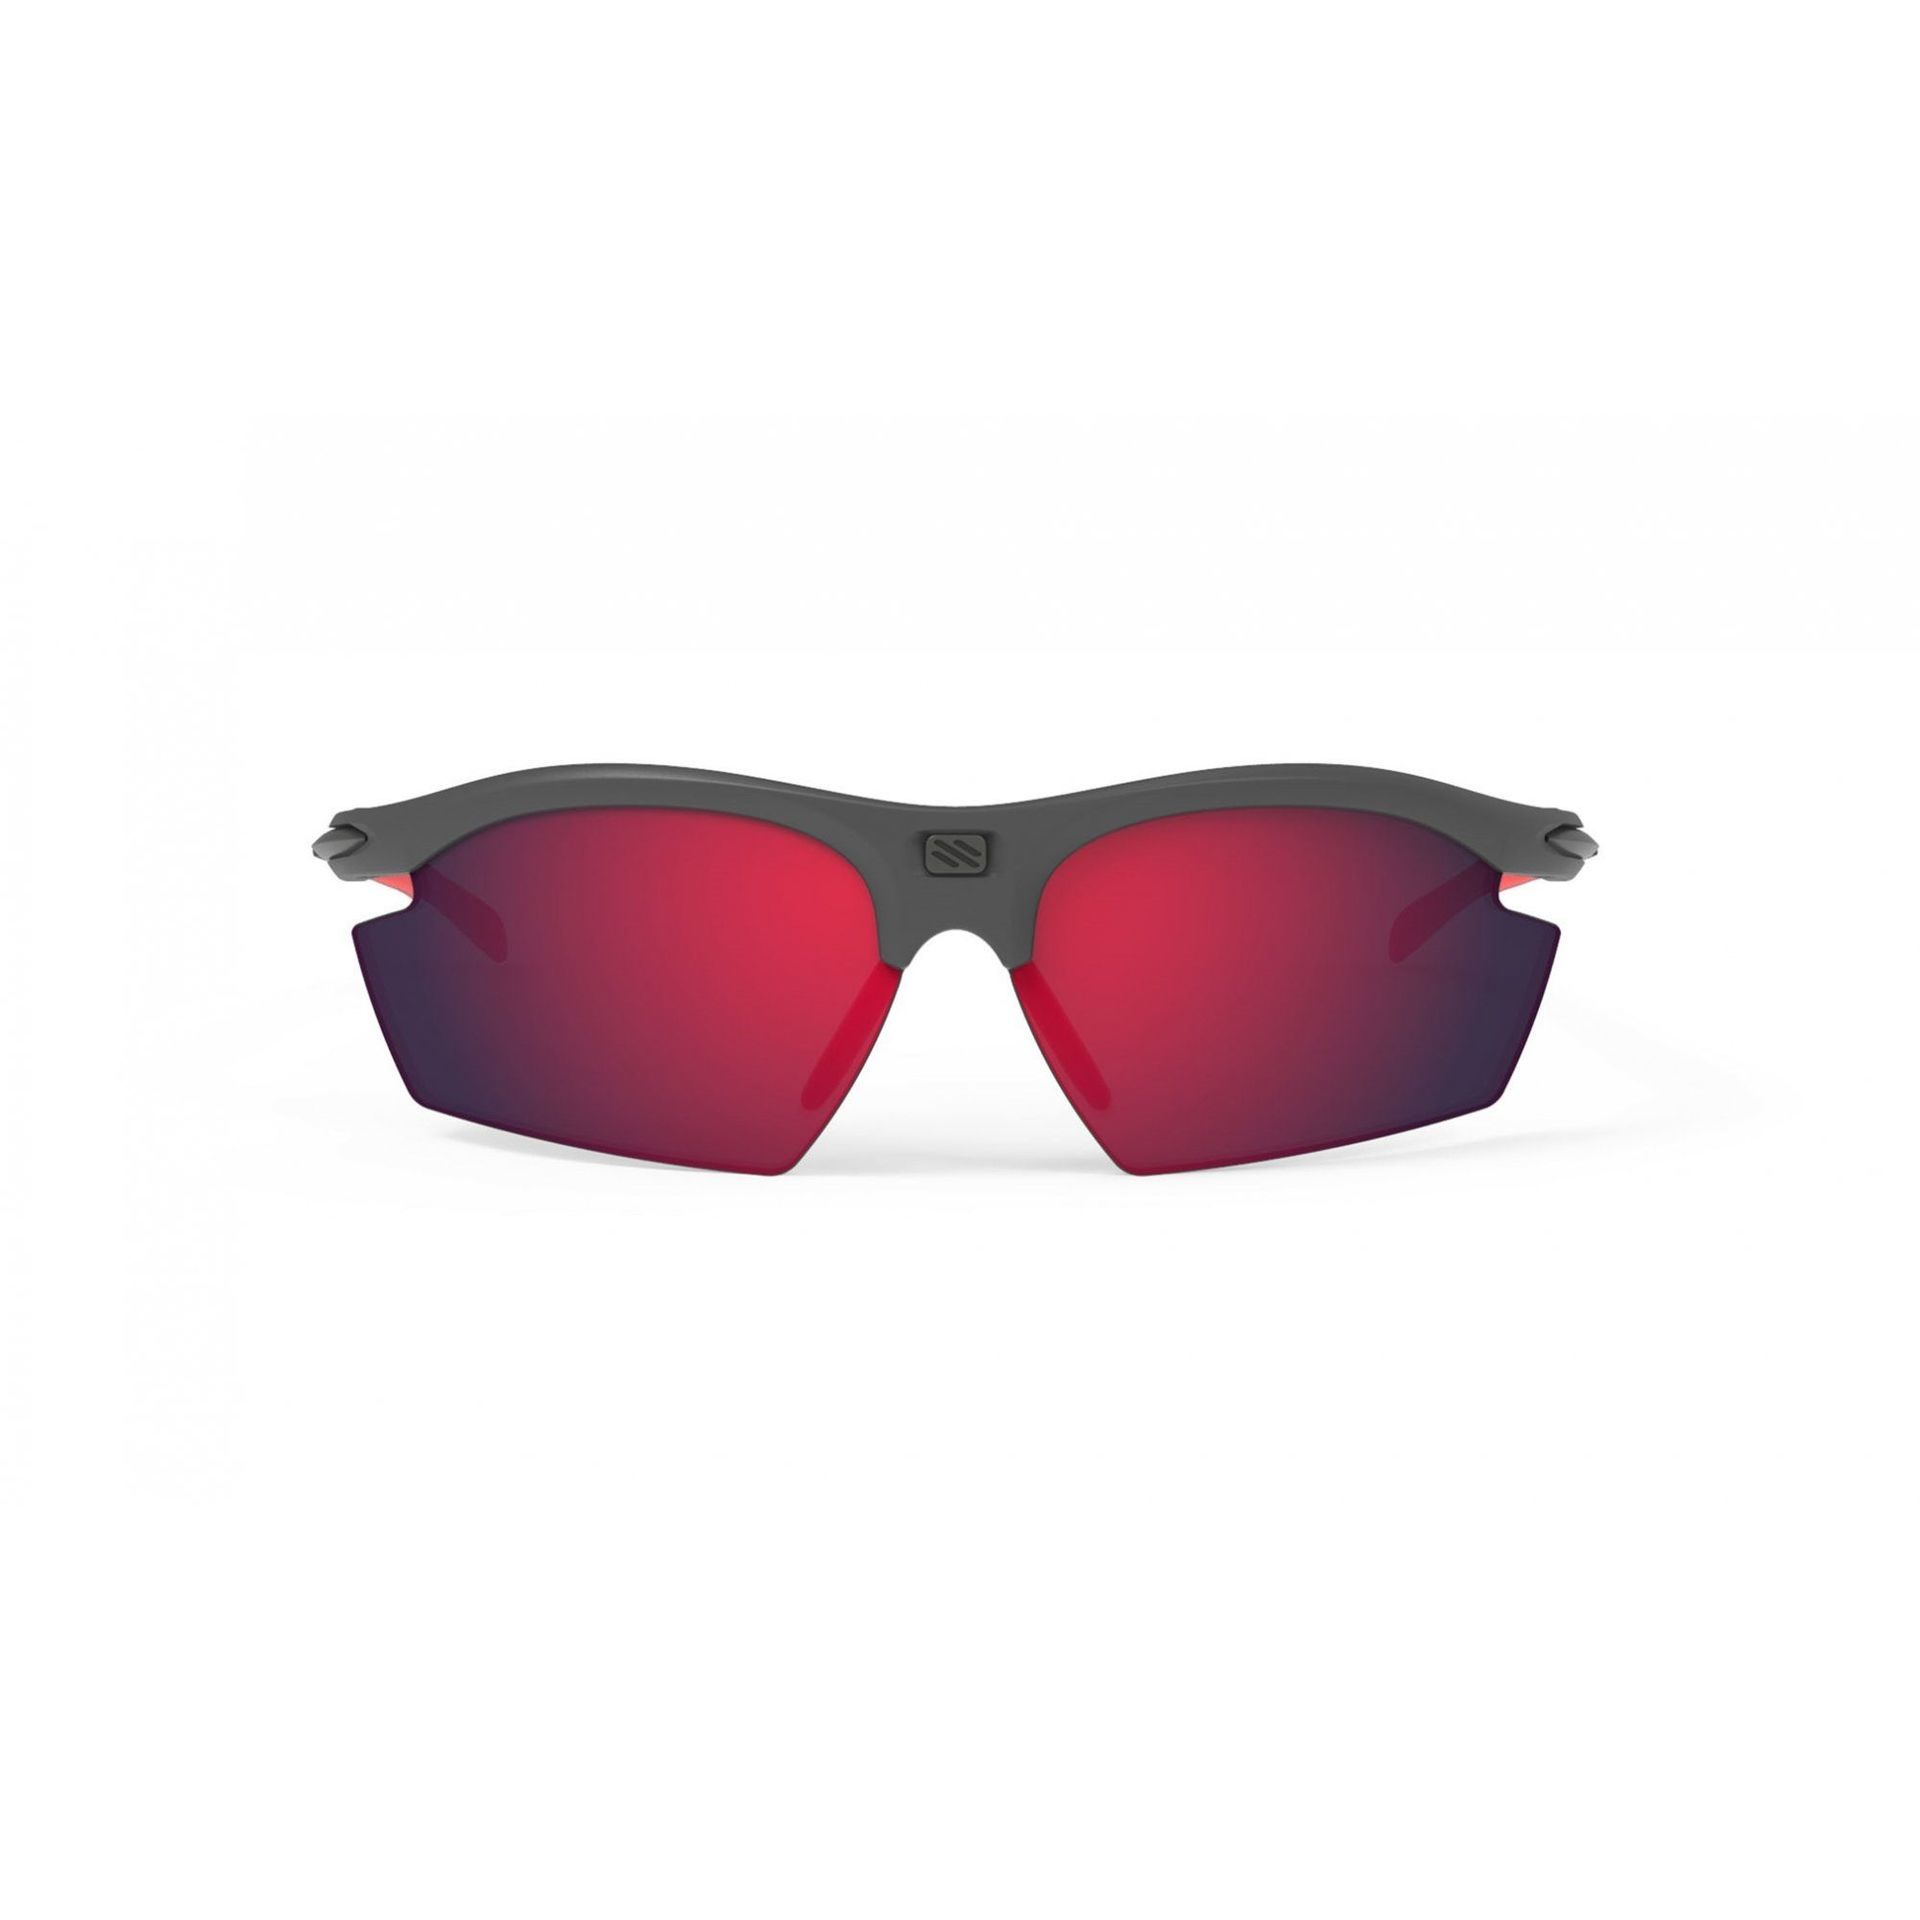 OKULARY RUDY PROJECT RYDON GRAPHITE|RED + ML RED SP533898 2